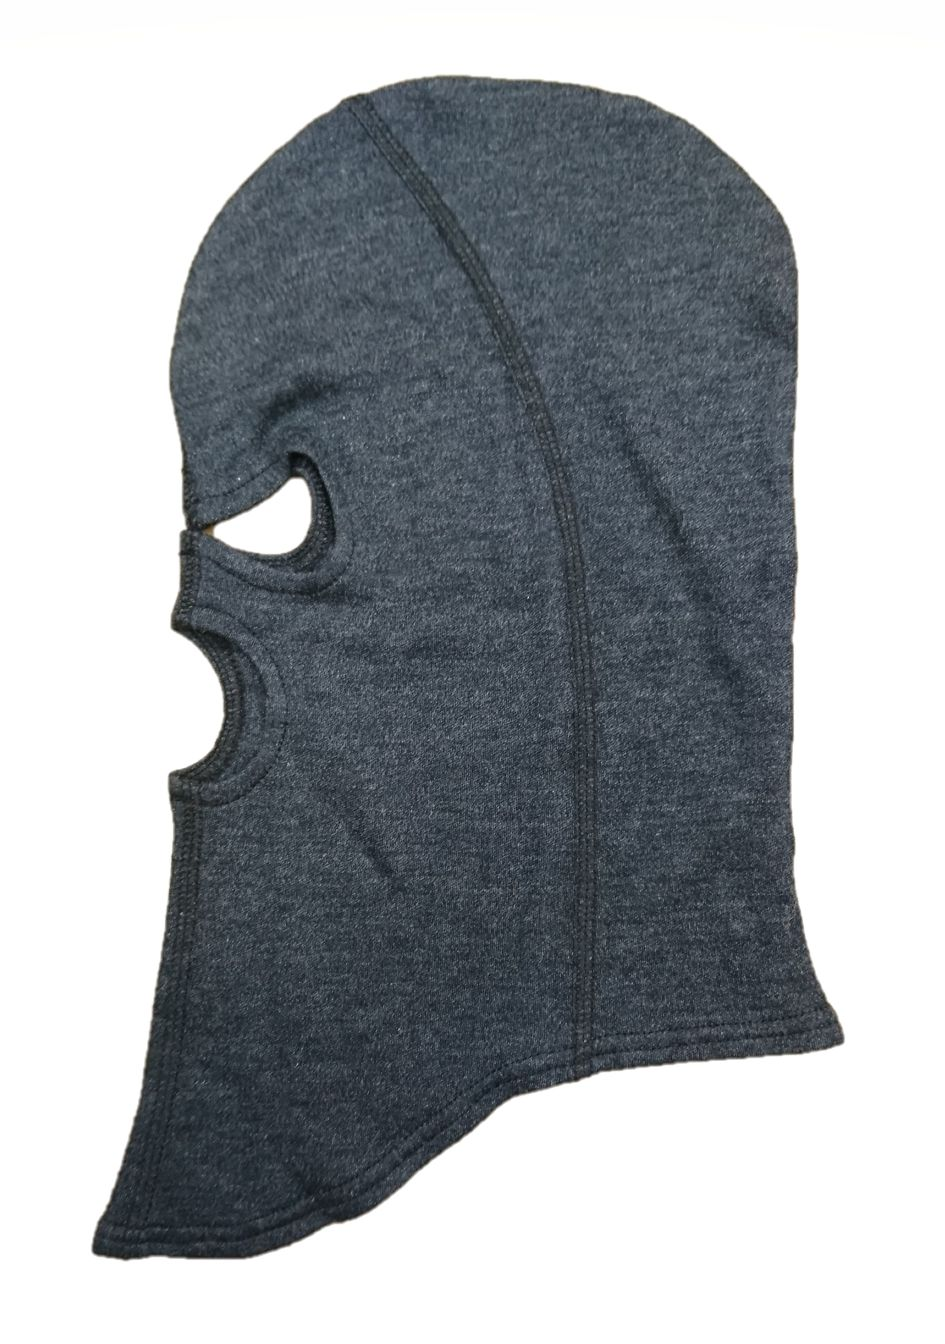 Nomex / FR Blending Balaclava for Tactical / Military / Police3